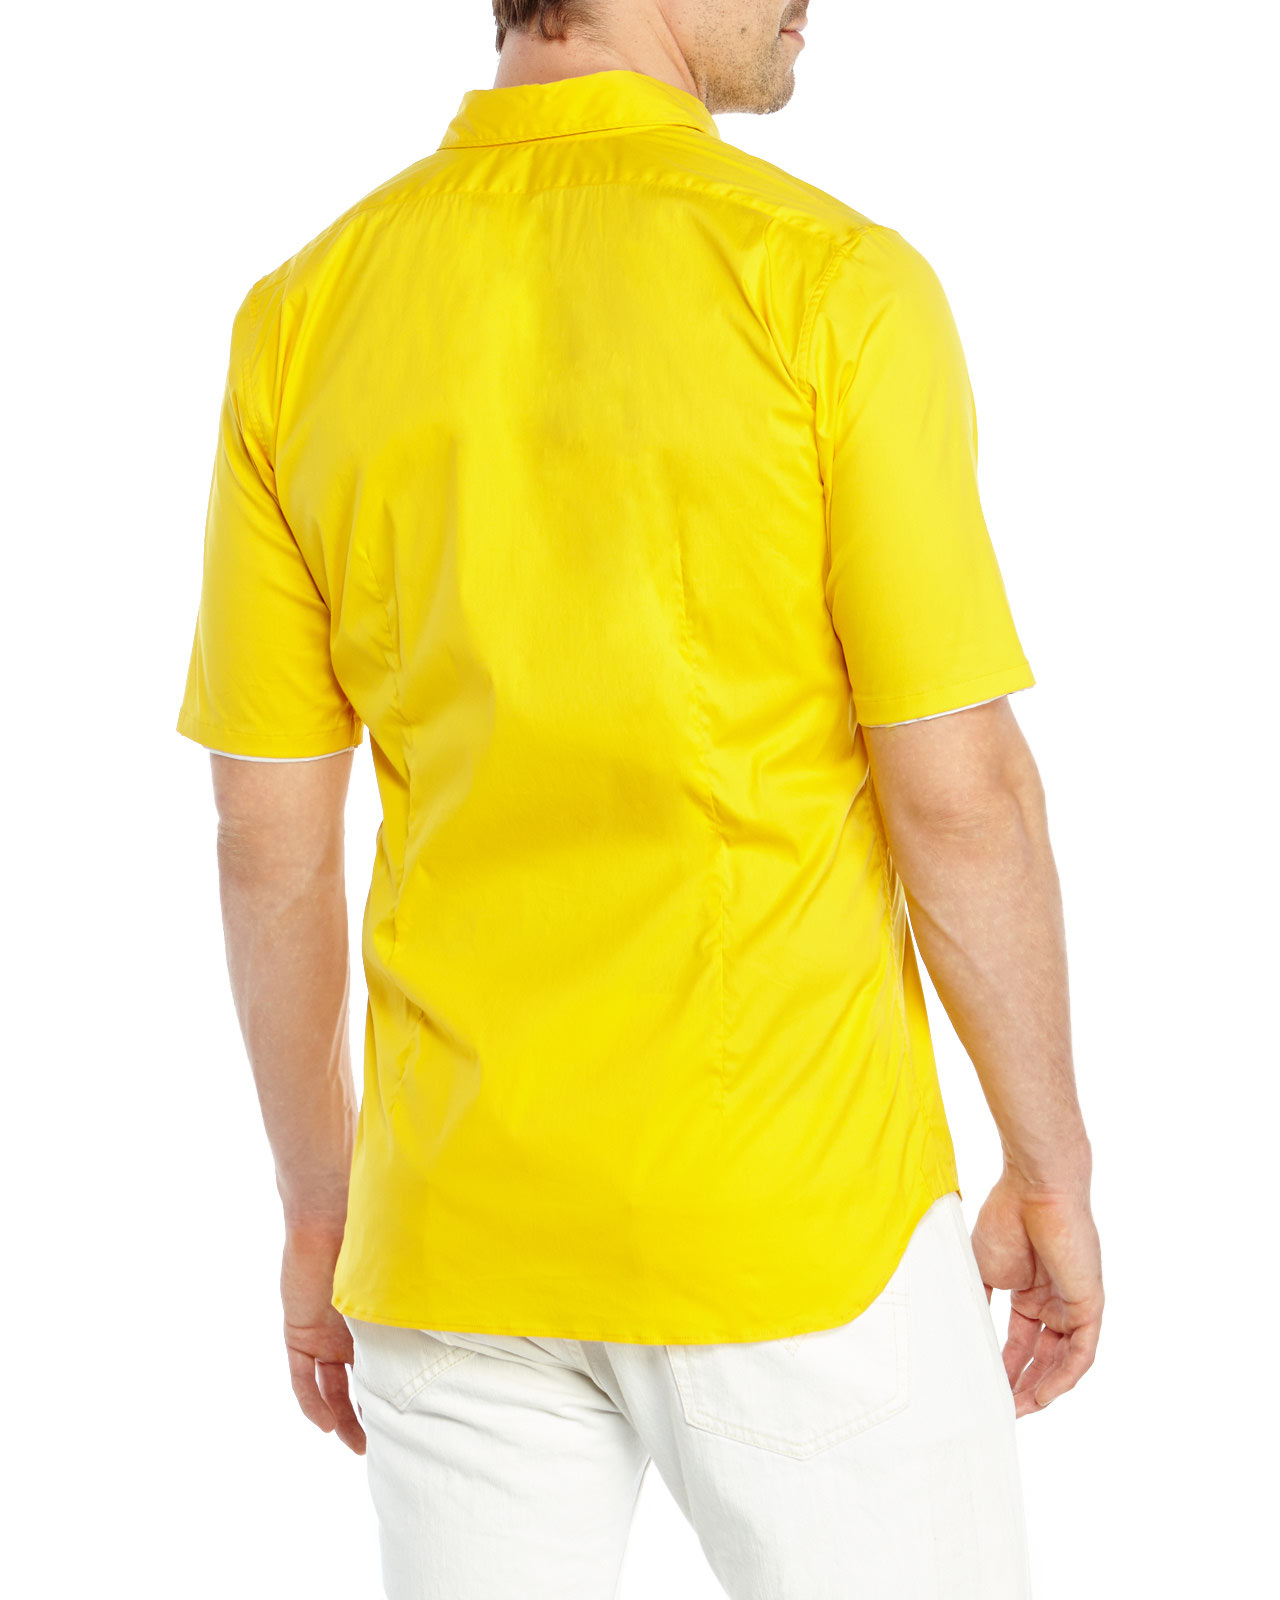 Yellow Dress Shirts for Men at Macy's come in a variety of styles and sizes. Shop top brands for Men's Dress Shirts and find the perfect fit today.